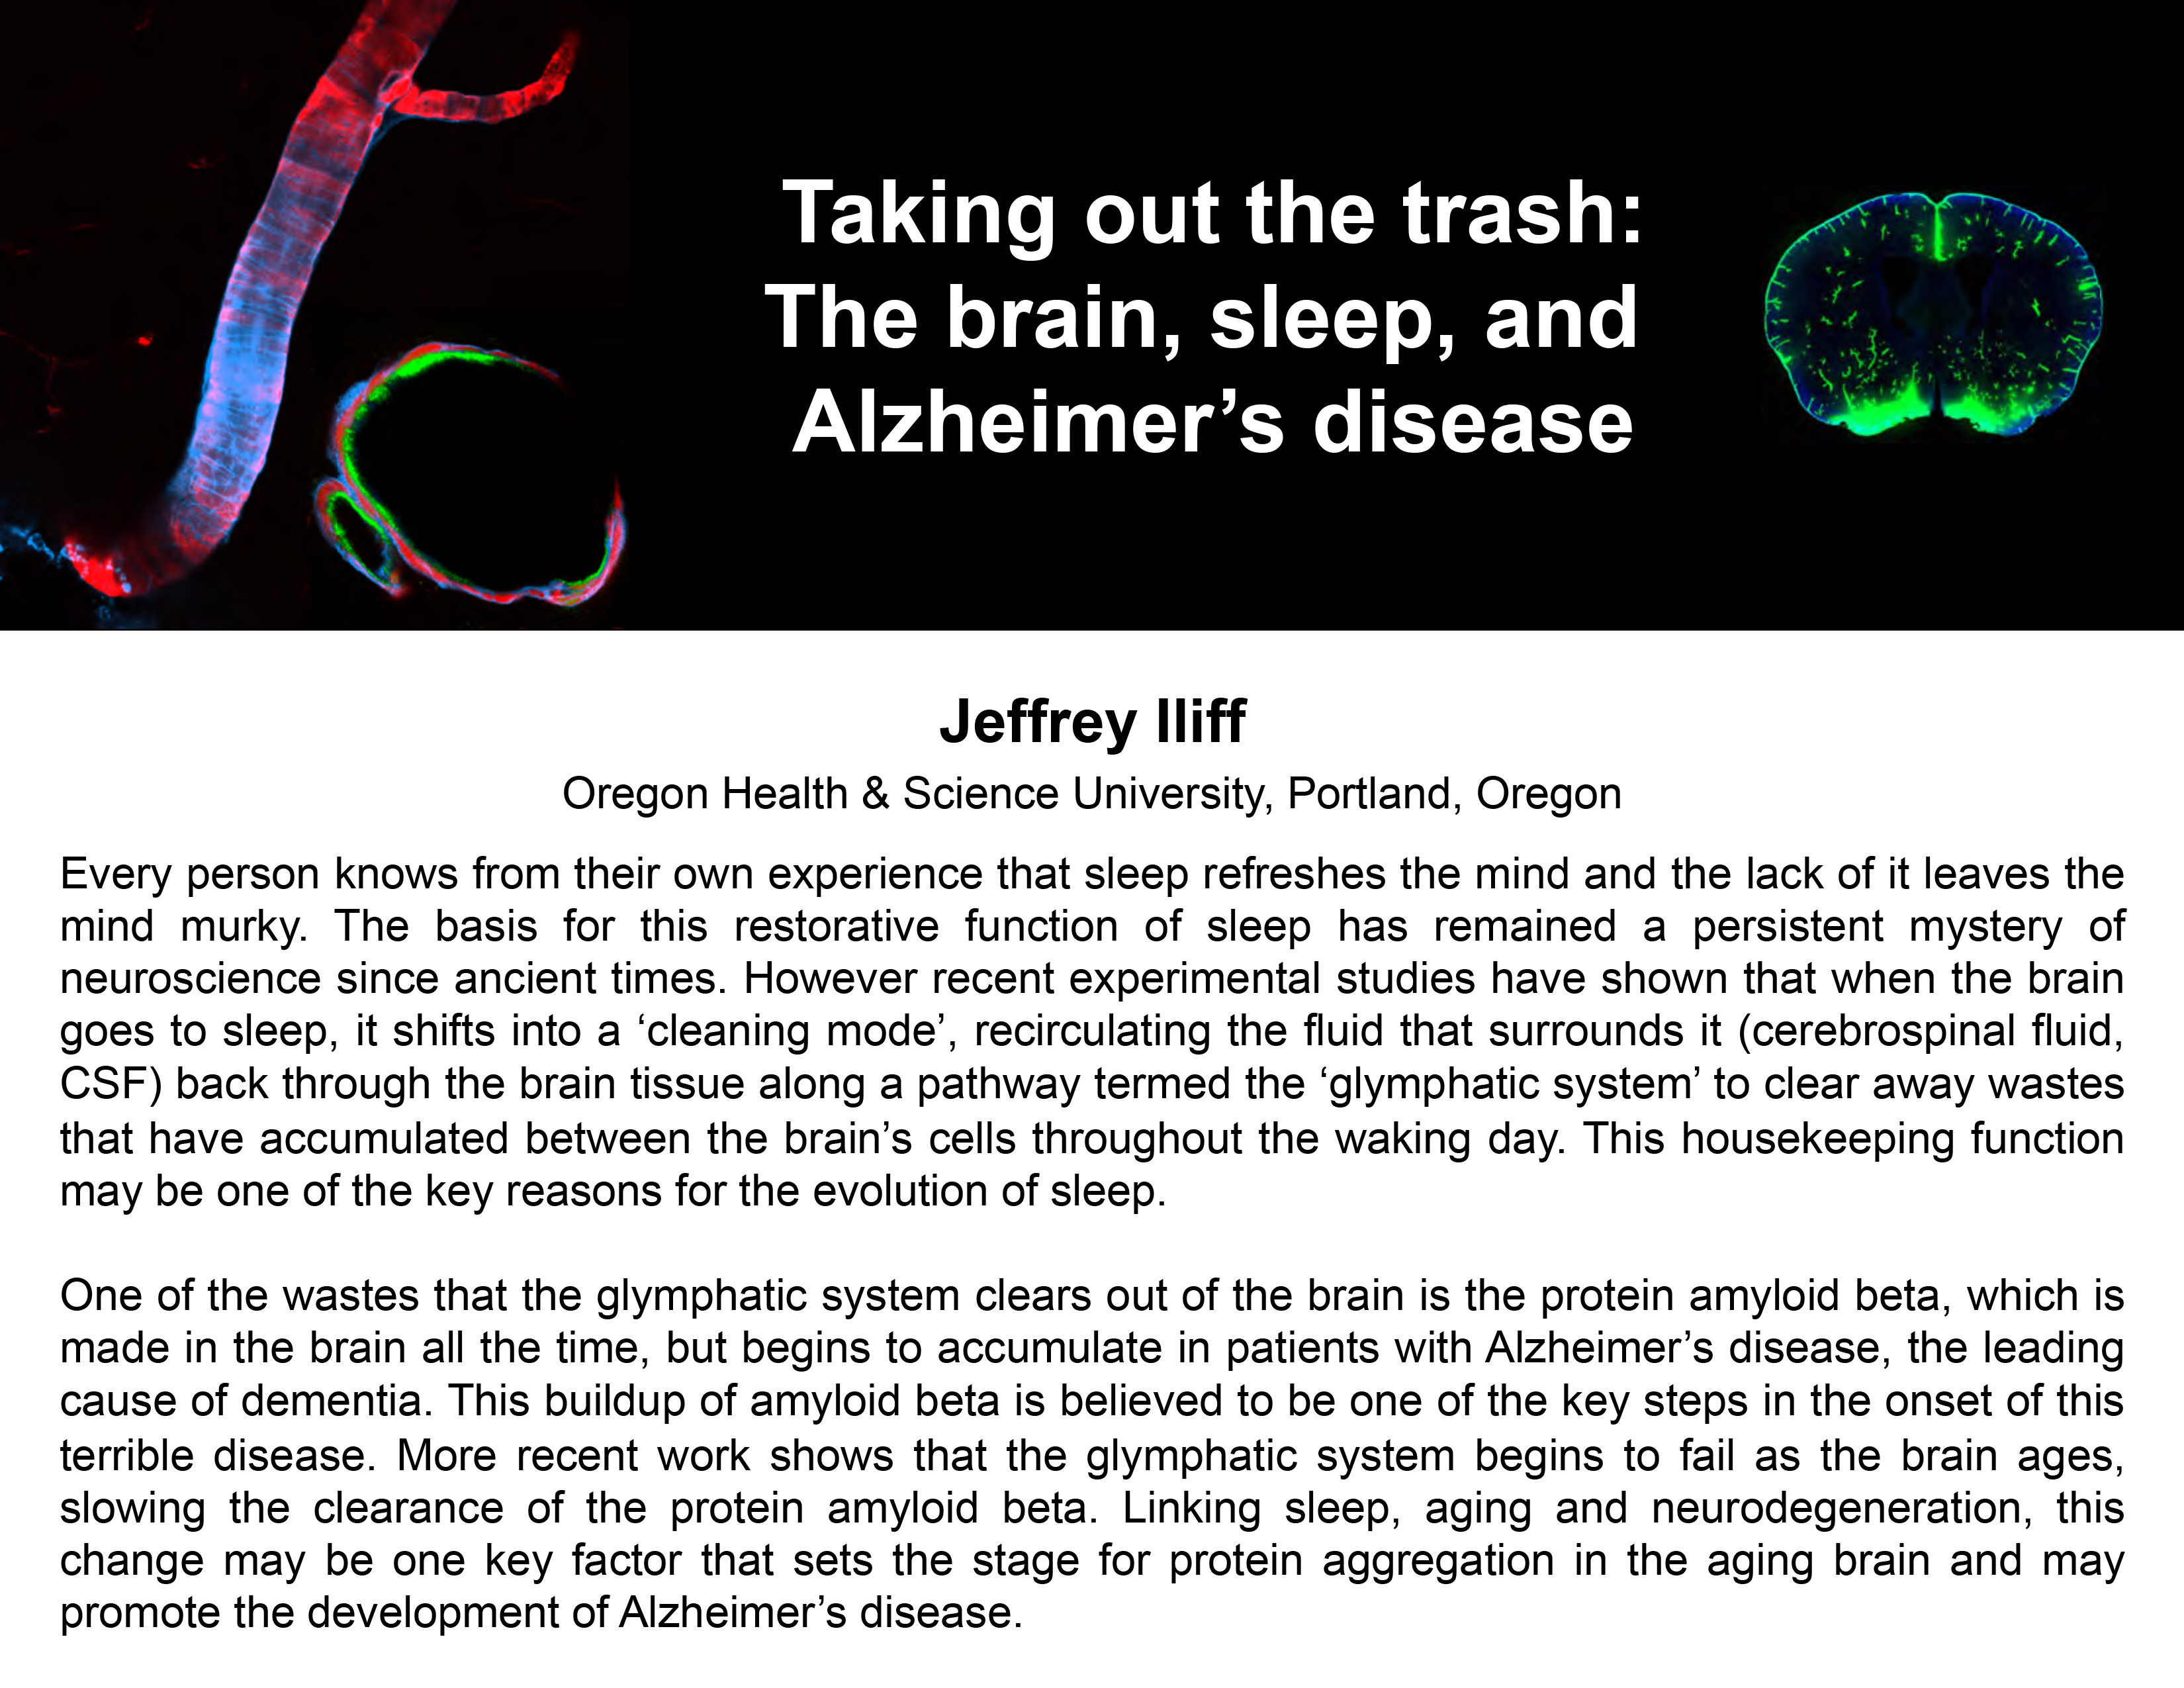 Plenary: TAKING OUT THE TRASH: THE BRAIN, SLEEP, AND ALZHEIMER